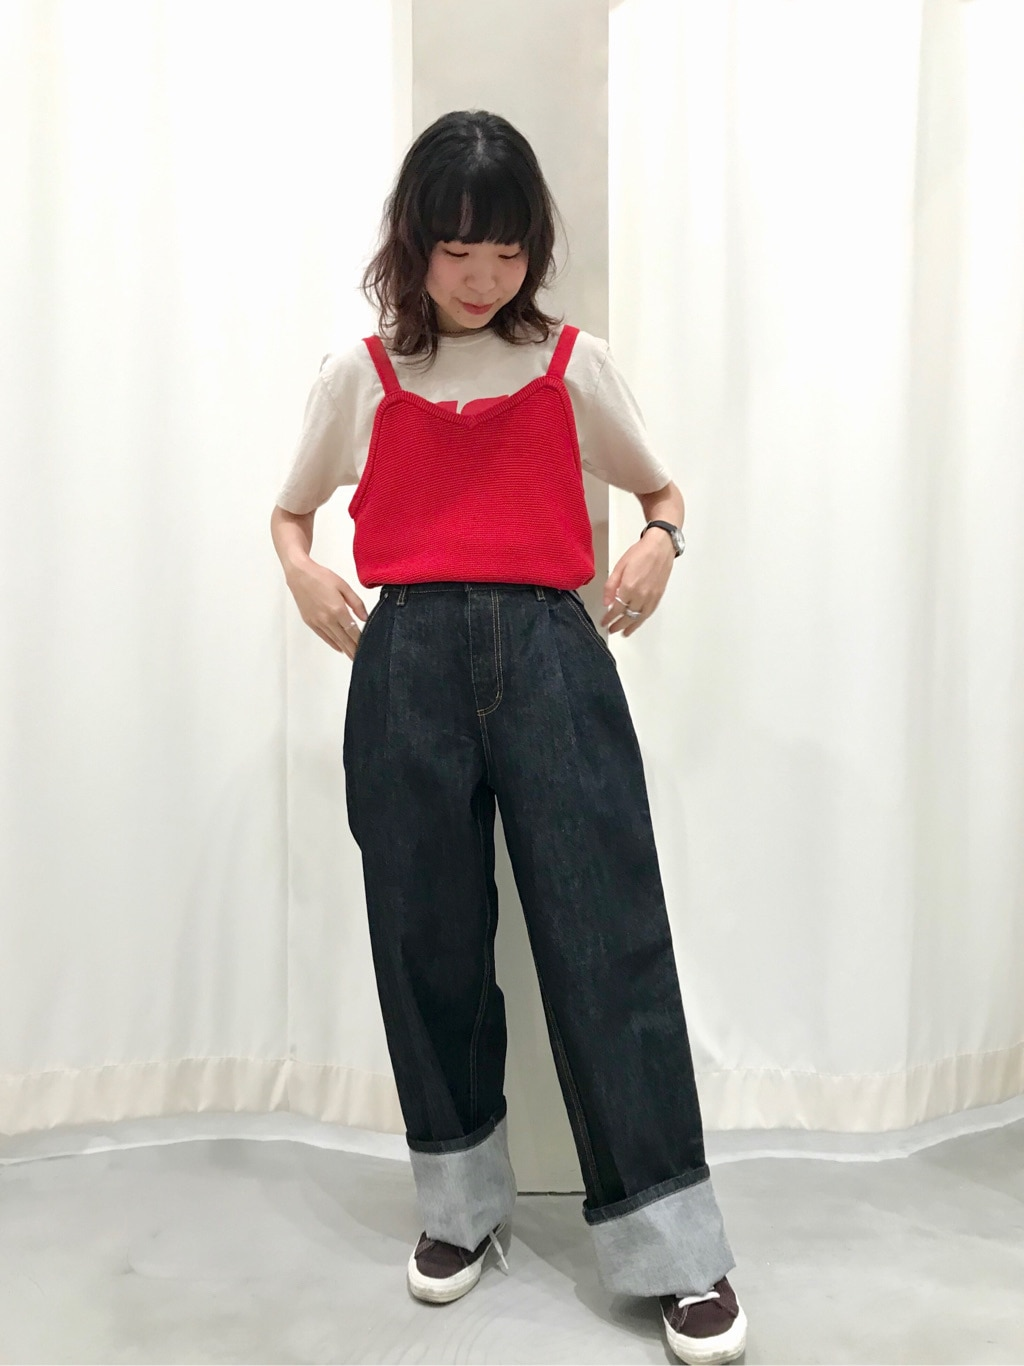 AMB SHOP PAR ICI CHILD WOMAN,PAR ICI ルミネ横浜 身長:154cm 2020.06.15